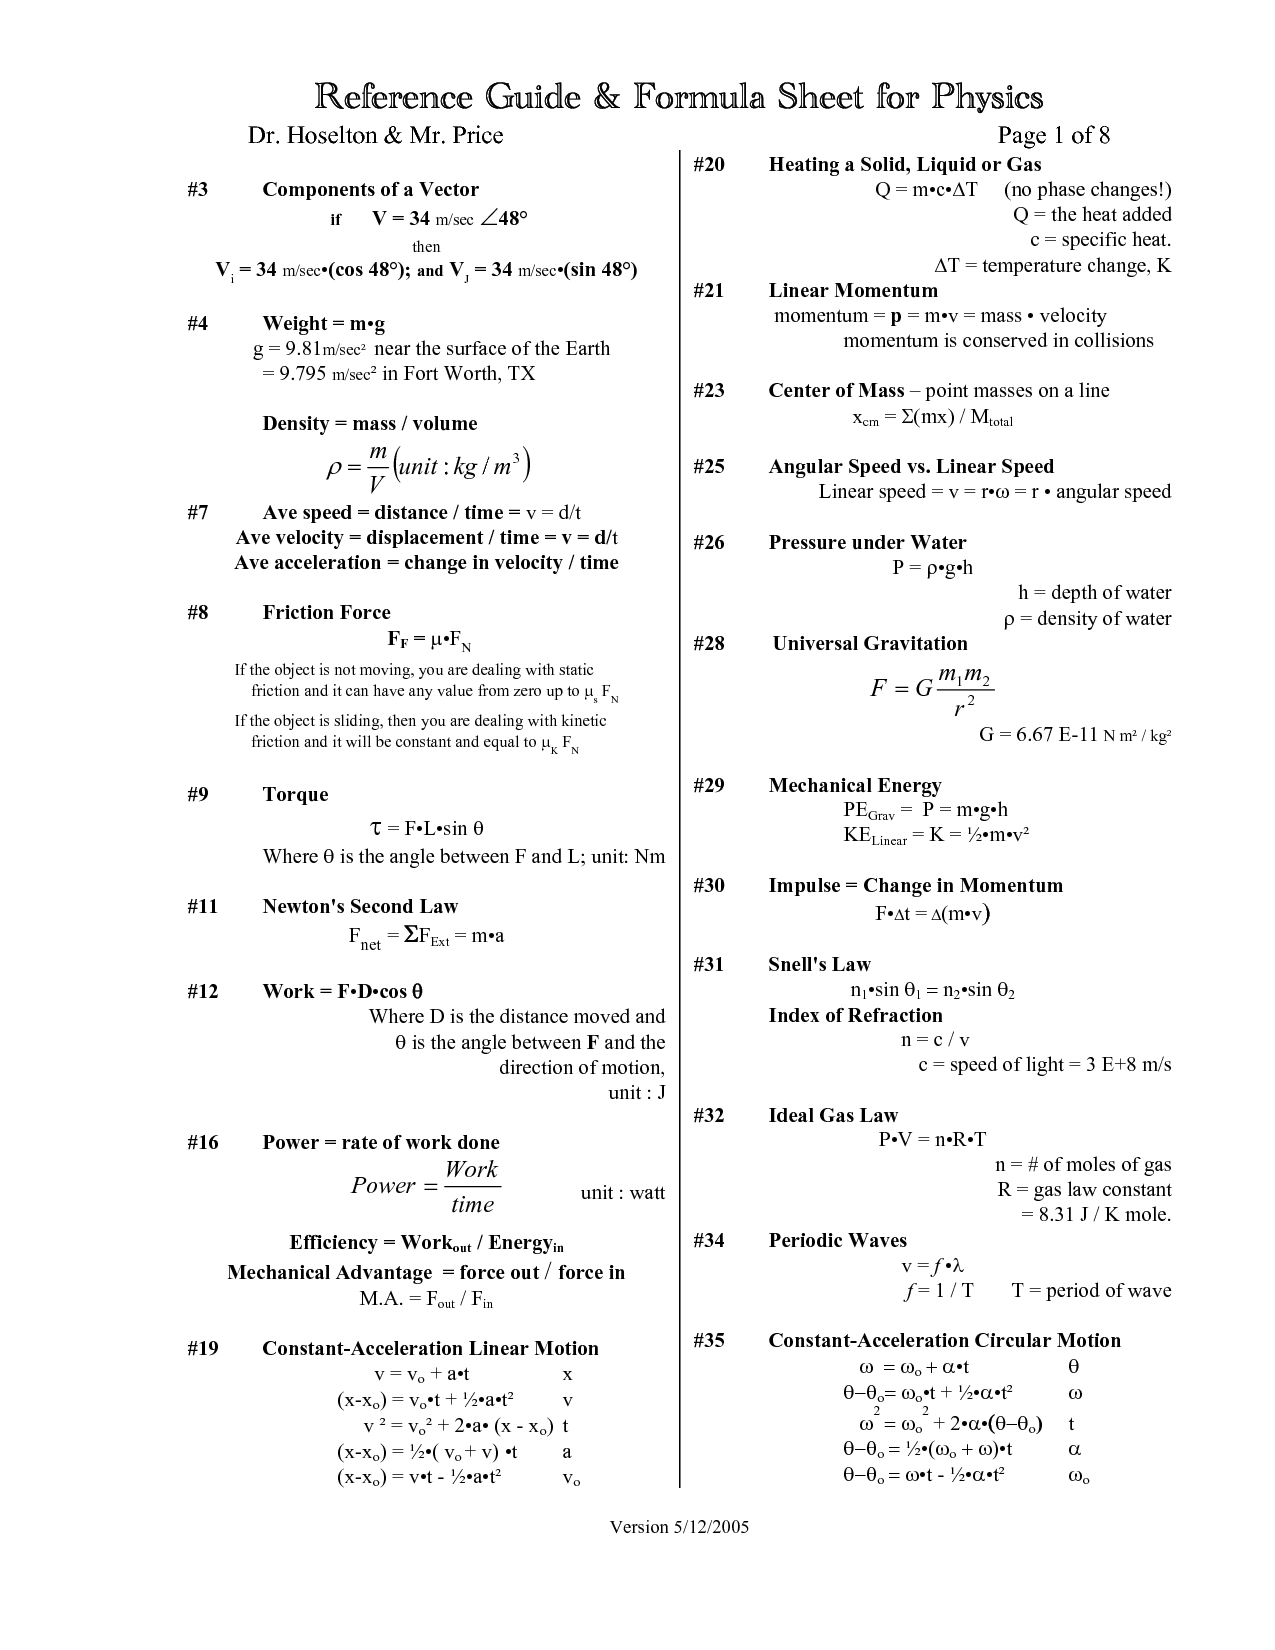 College Physics Formula Sheet